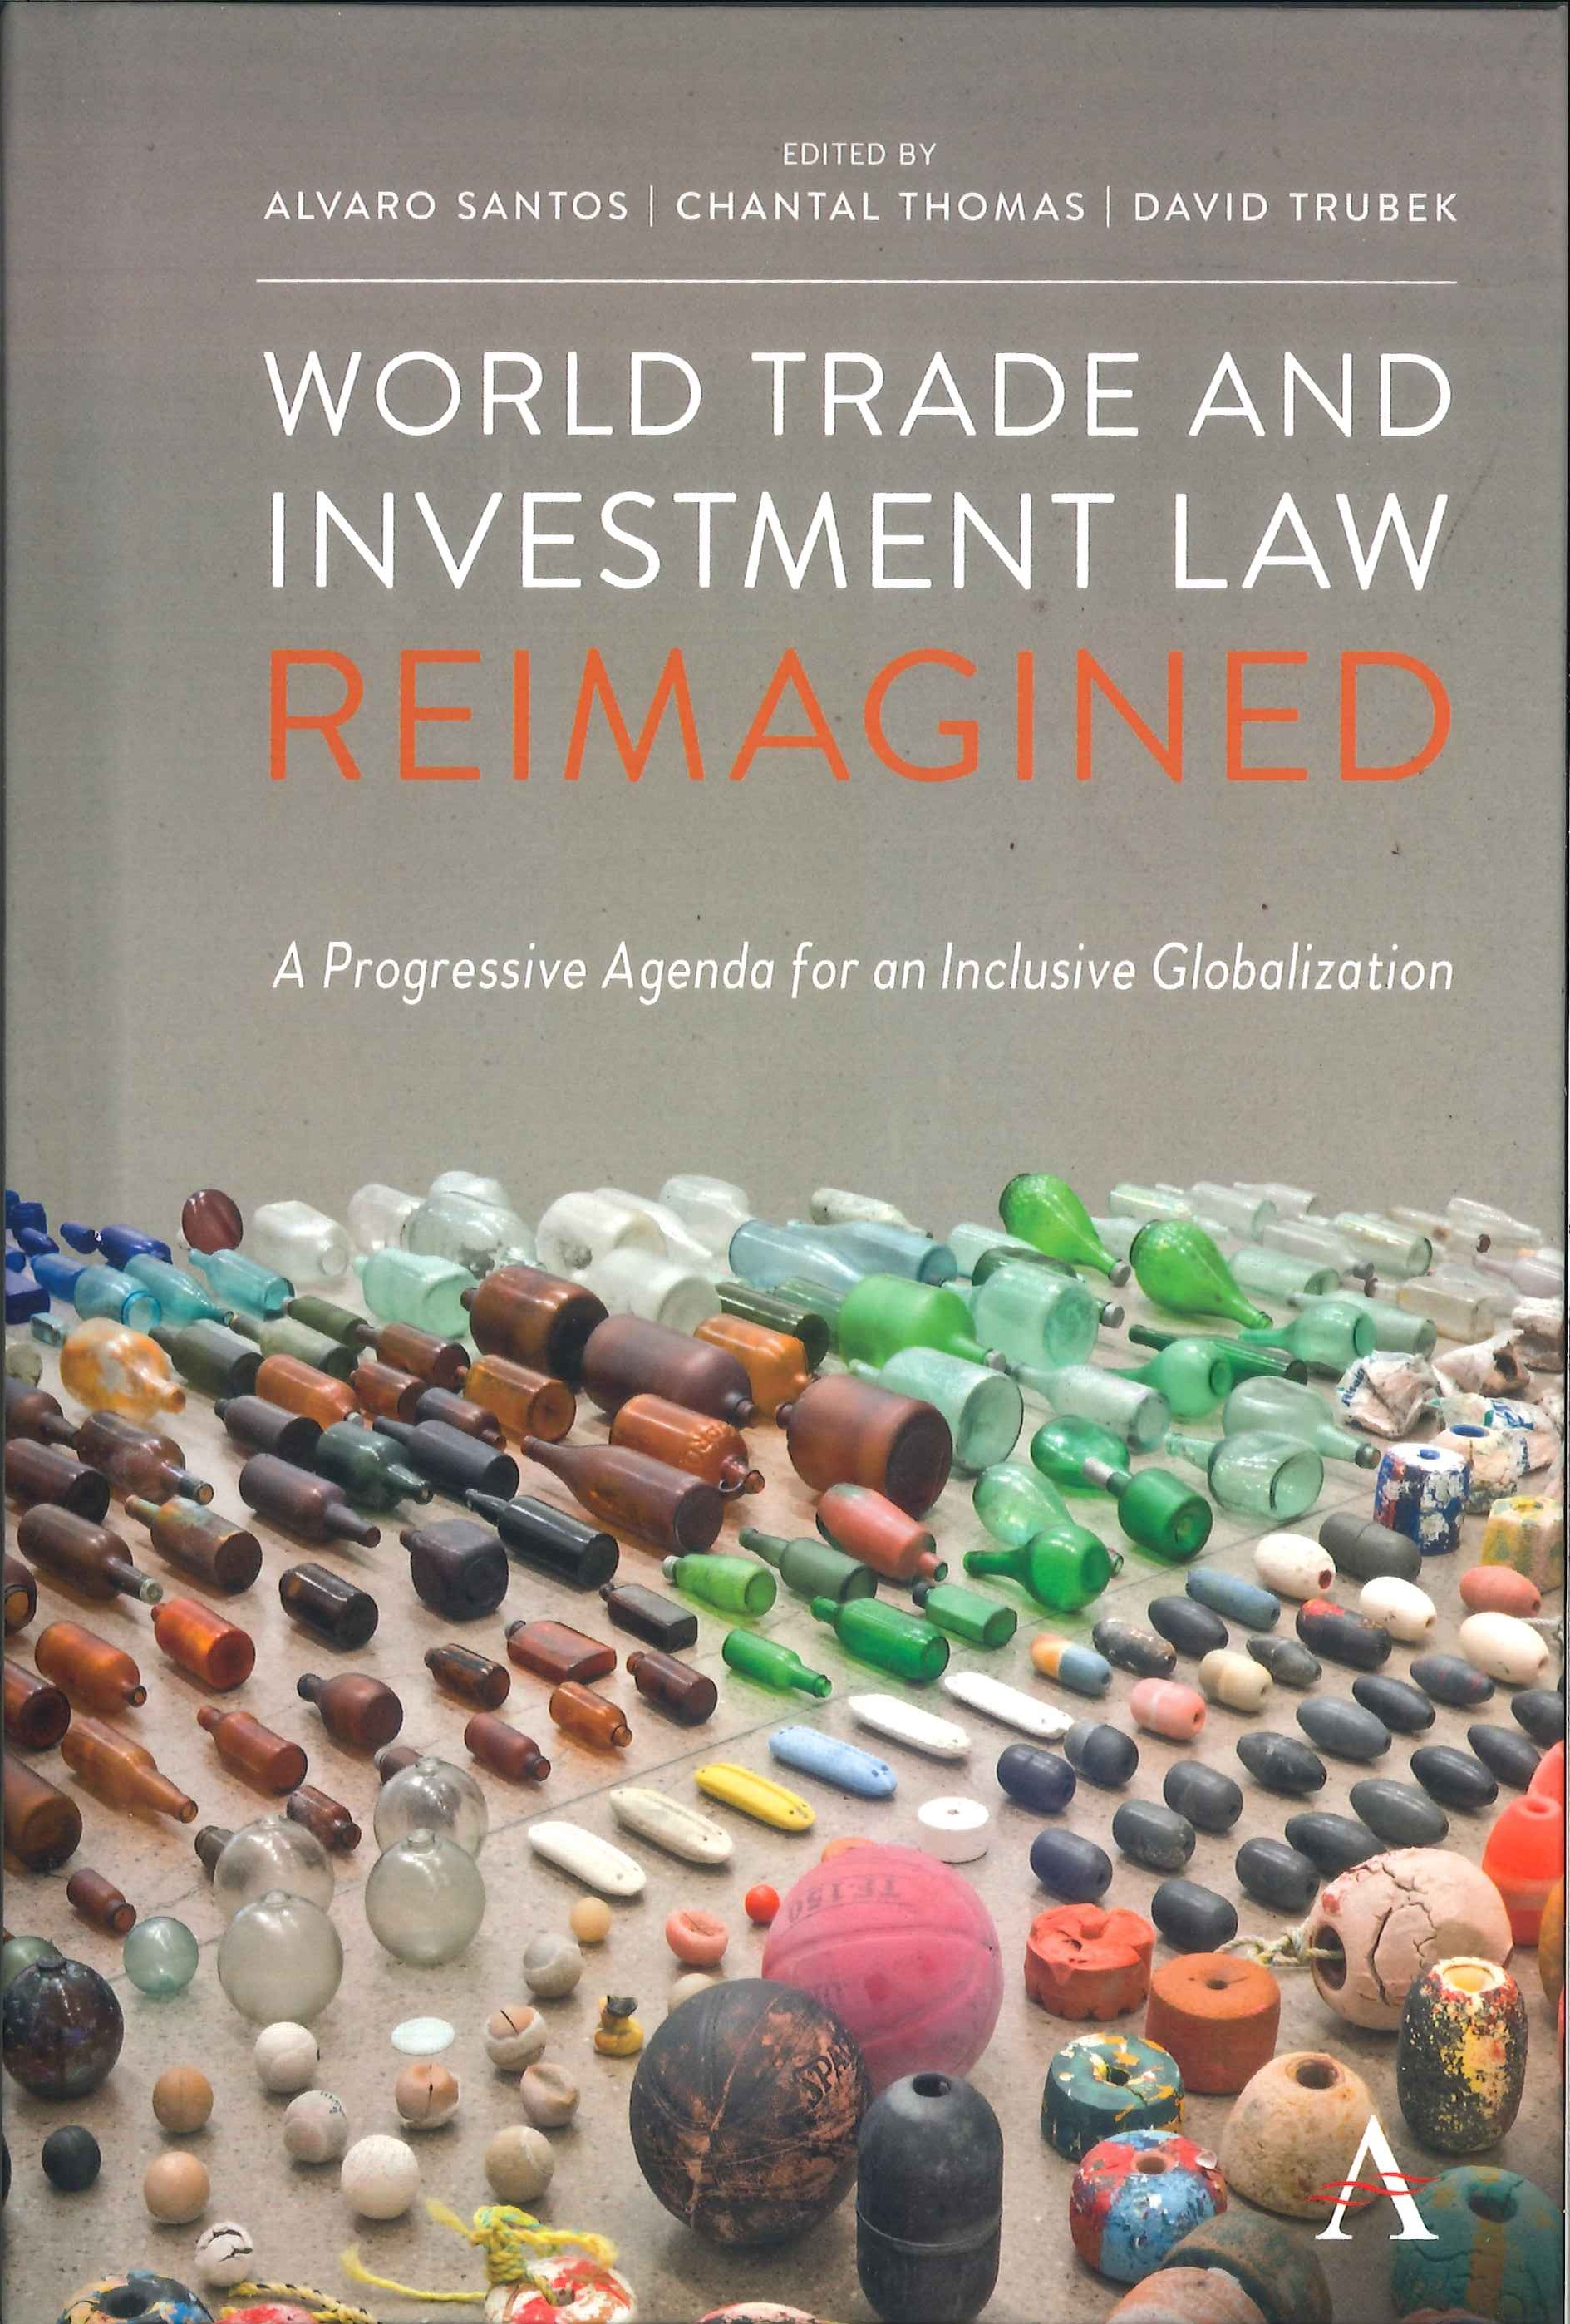 World trade and investment law reimagined:a progressive agenda for an inclusive globalization